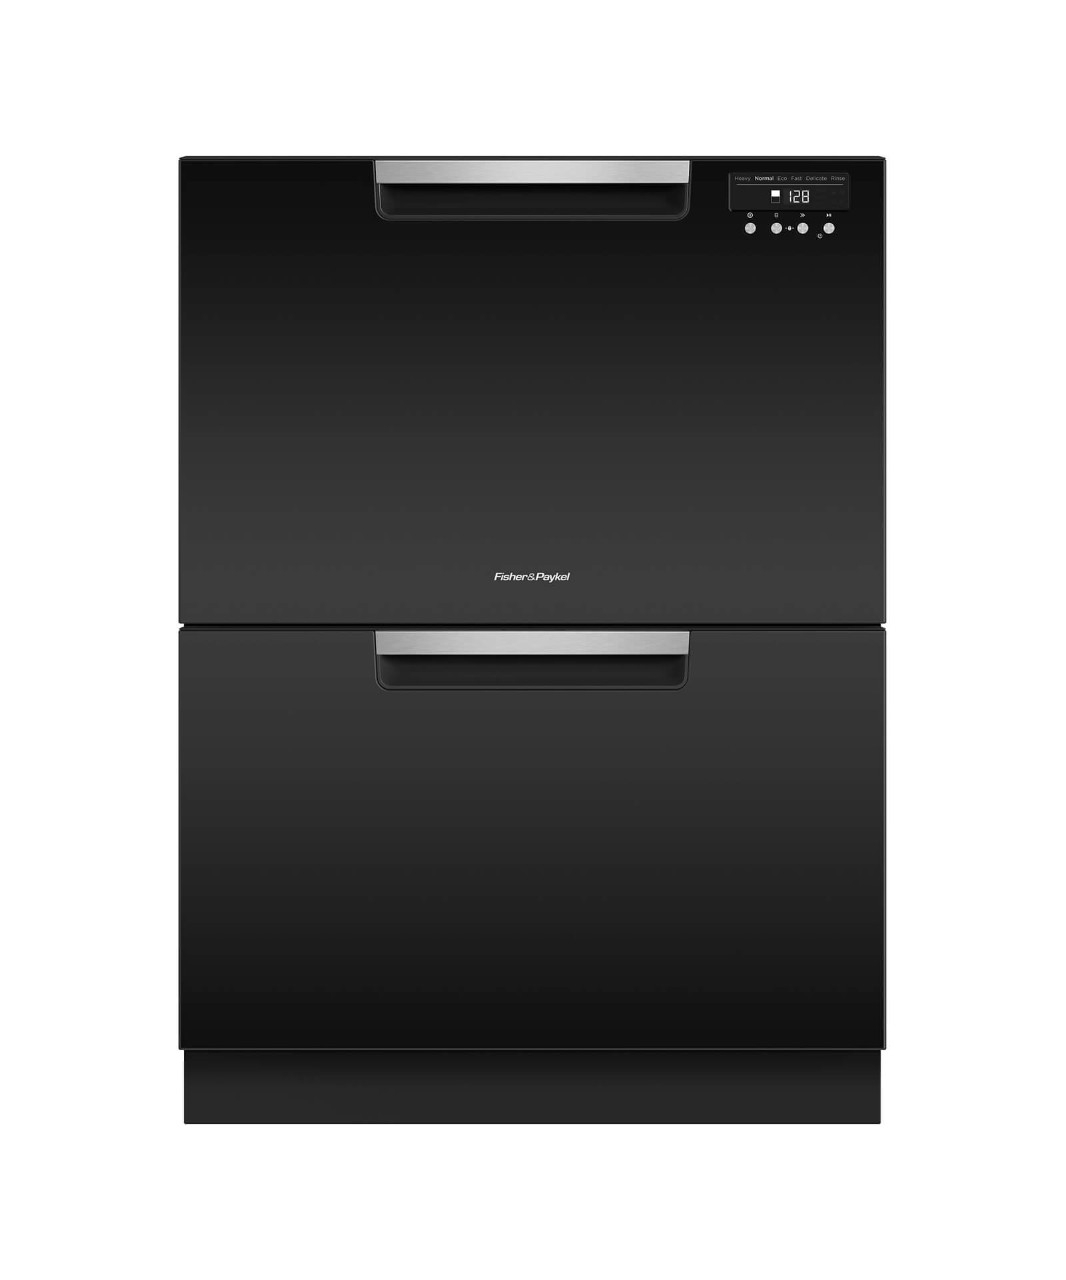 Scratch and Dent--ADA compliant Double DishDrawer dishwasher